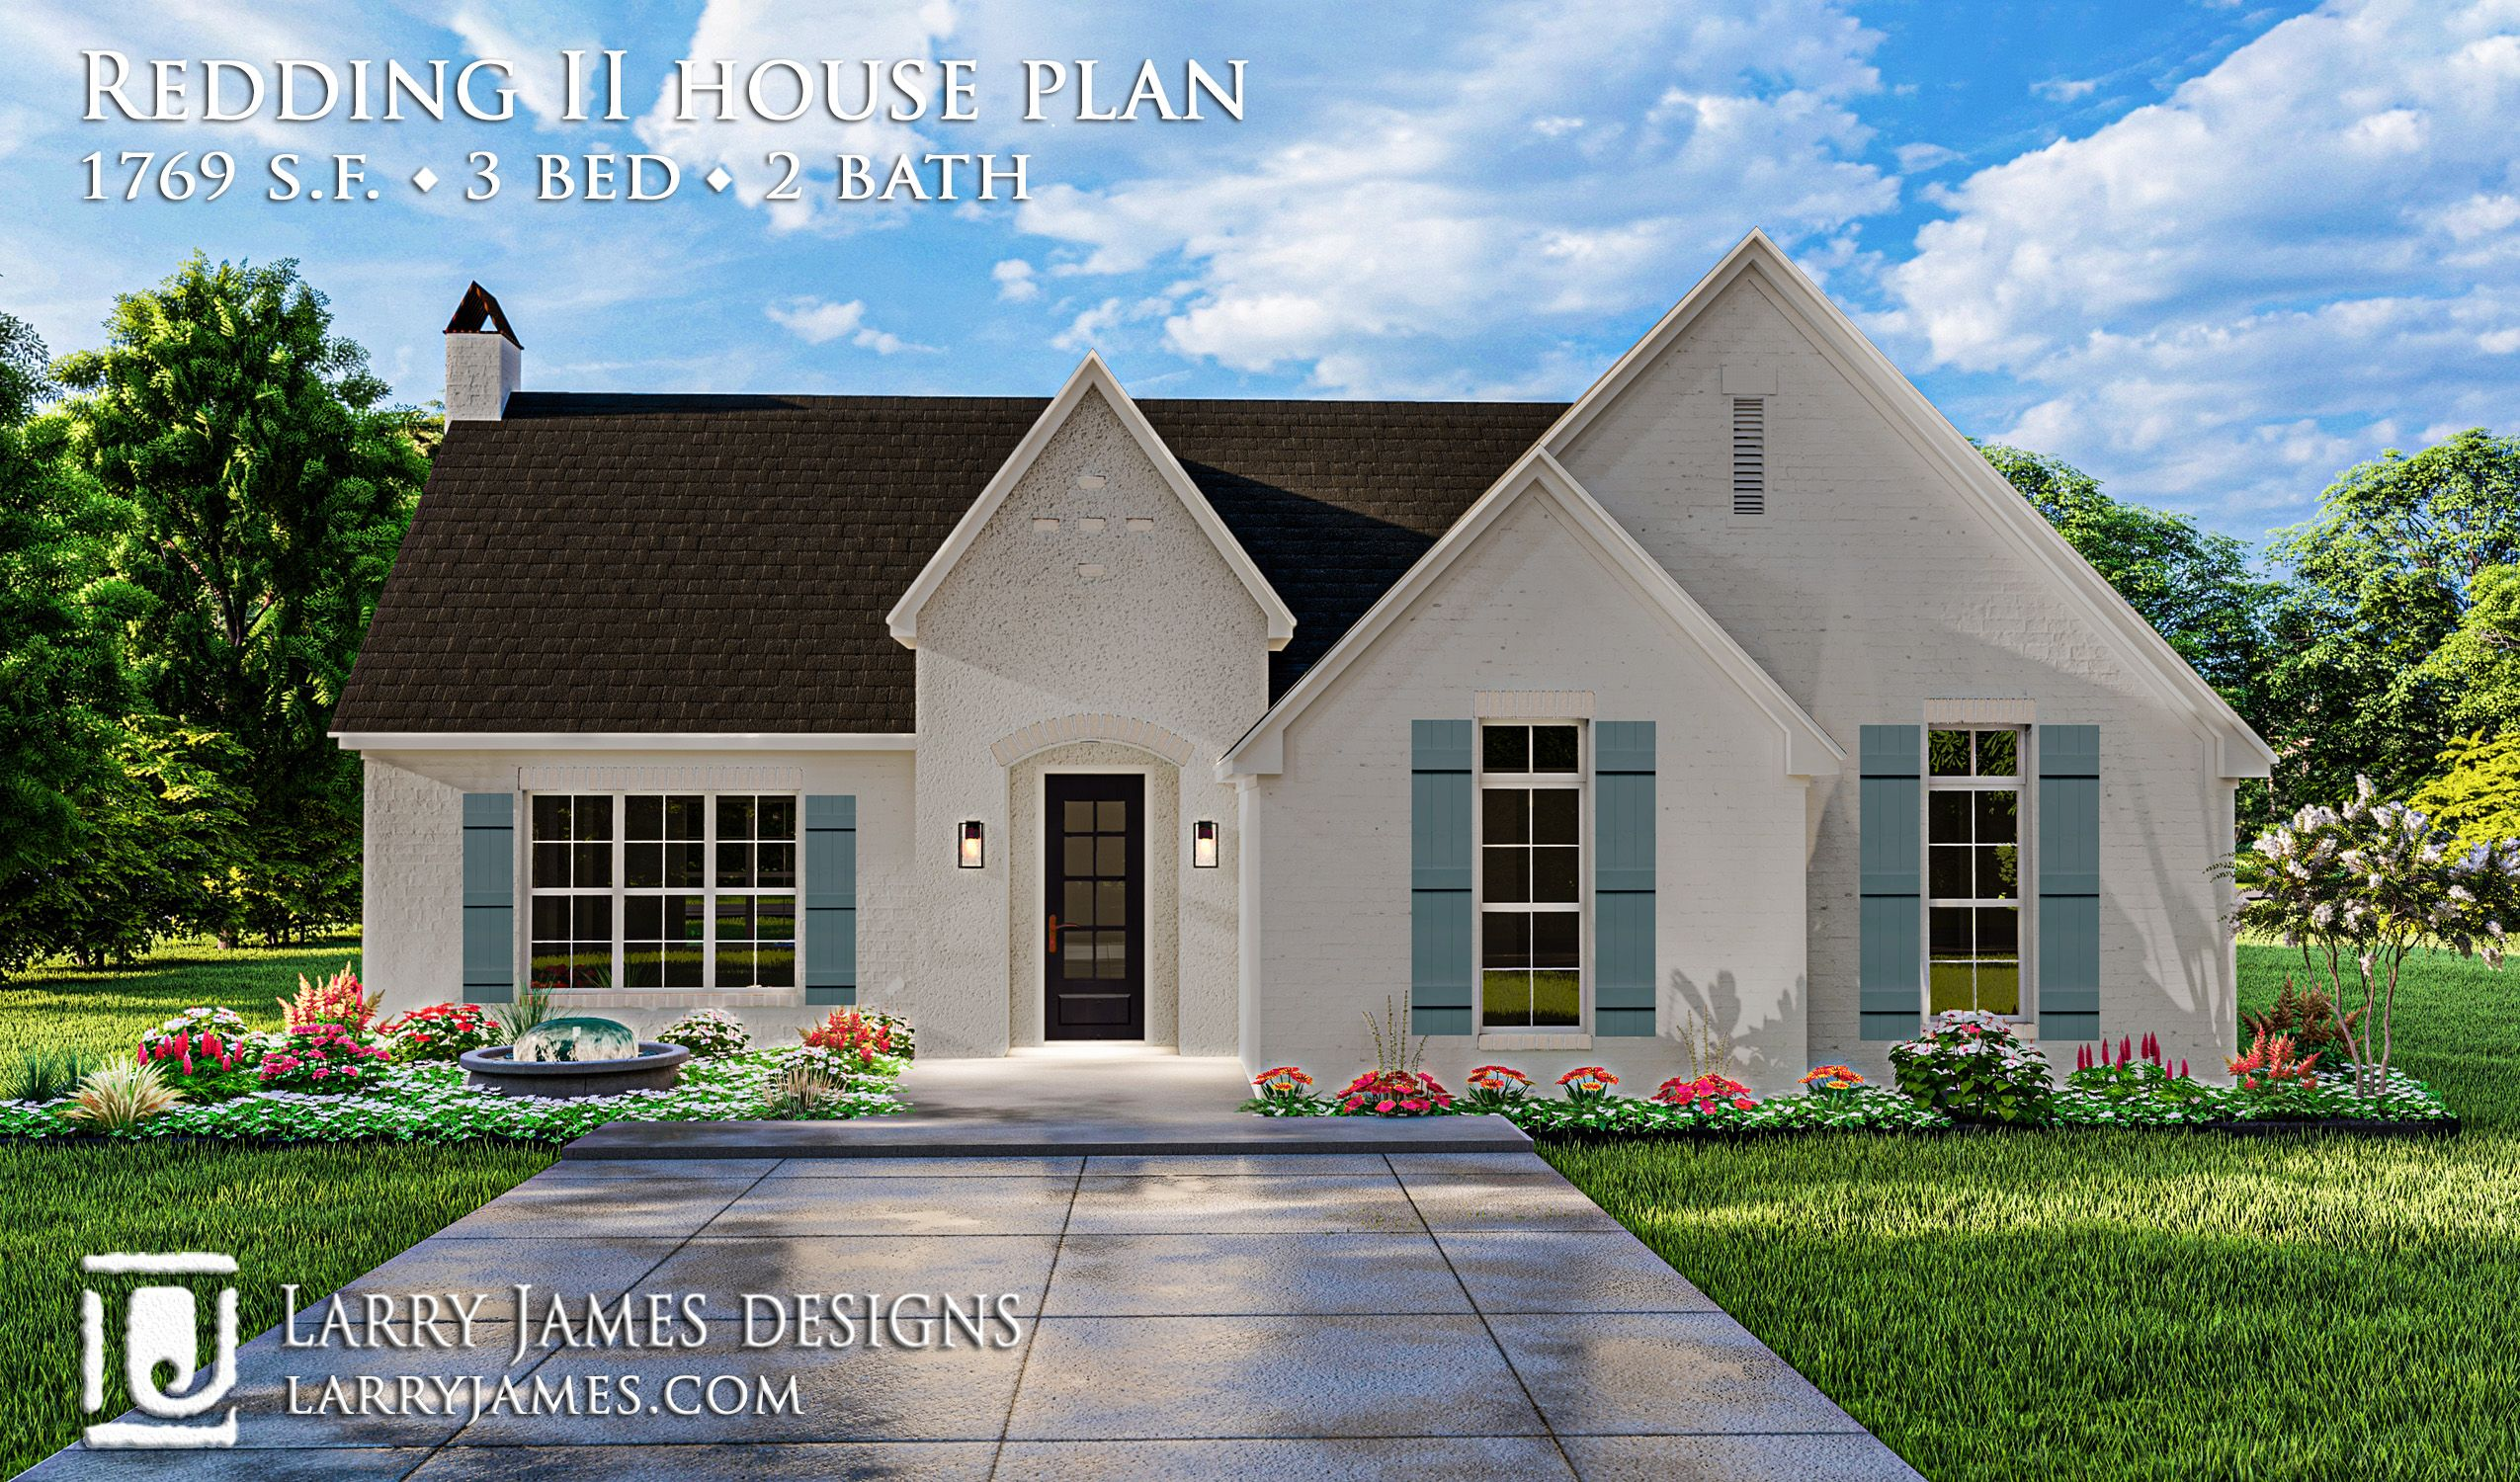 Redding Ii House Plan 20011 Cottage Style House Plans Country Style House Plans Cottage House Plans